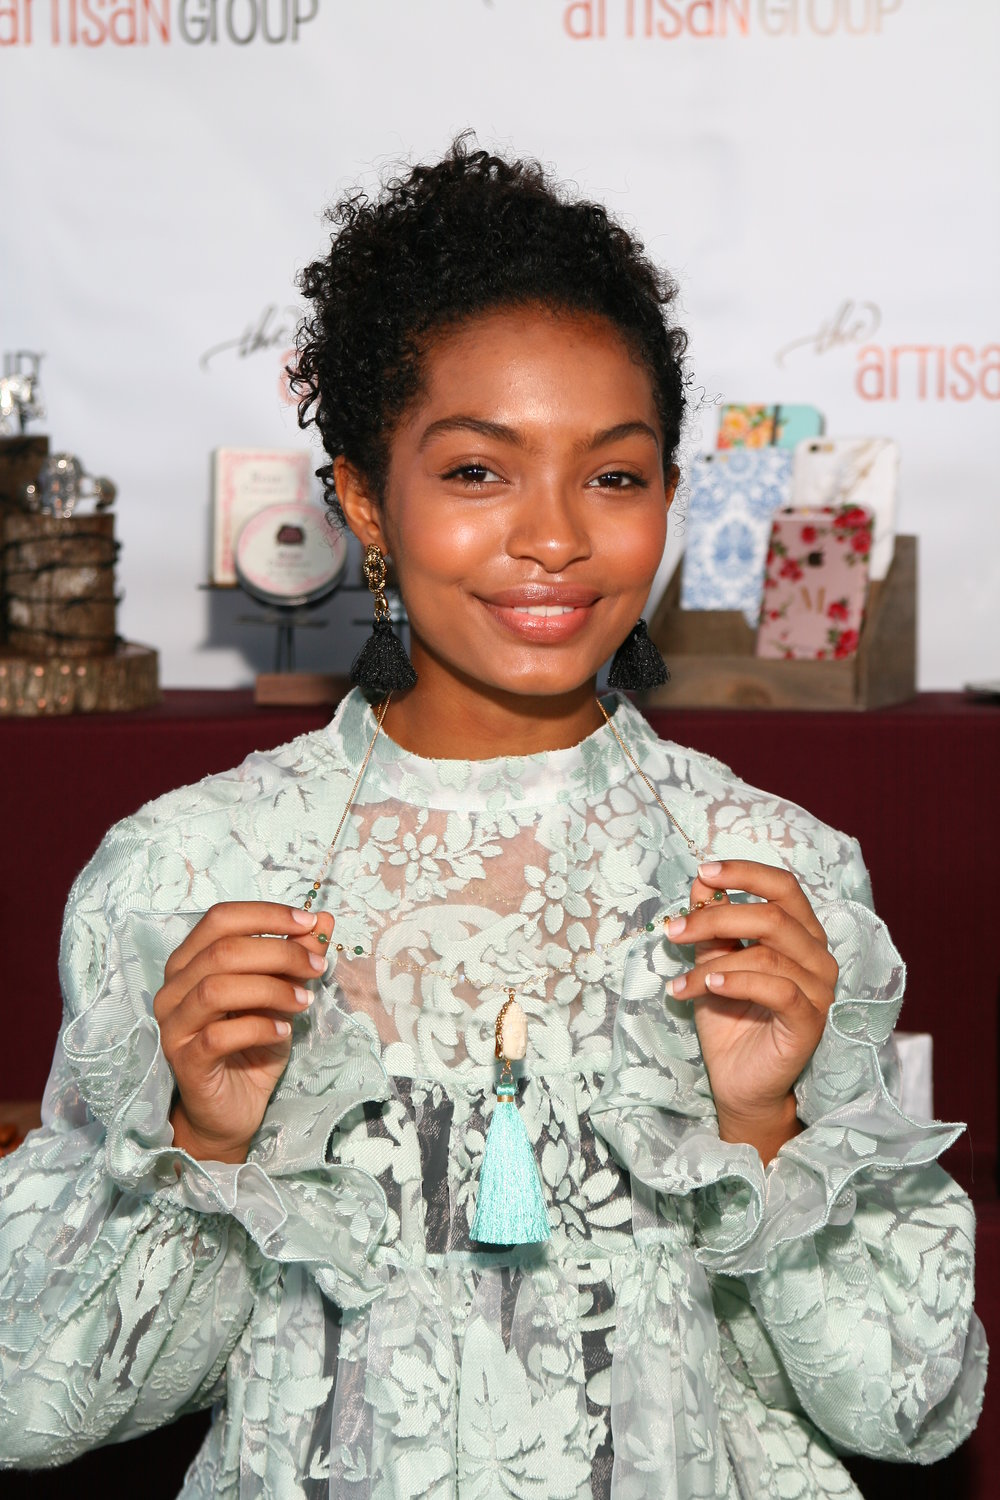 Yara Shahidi of Black-ish